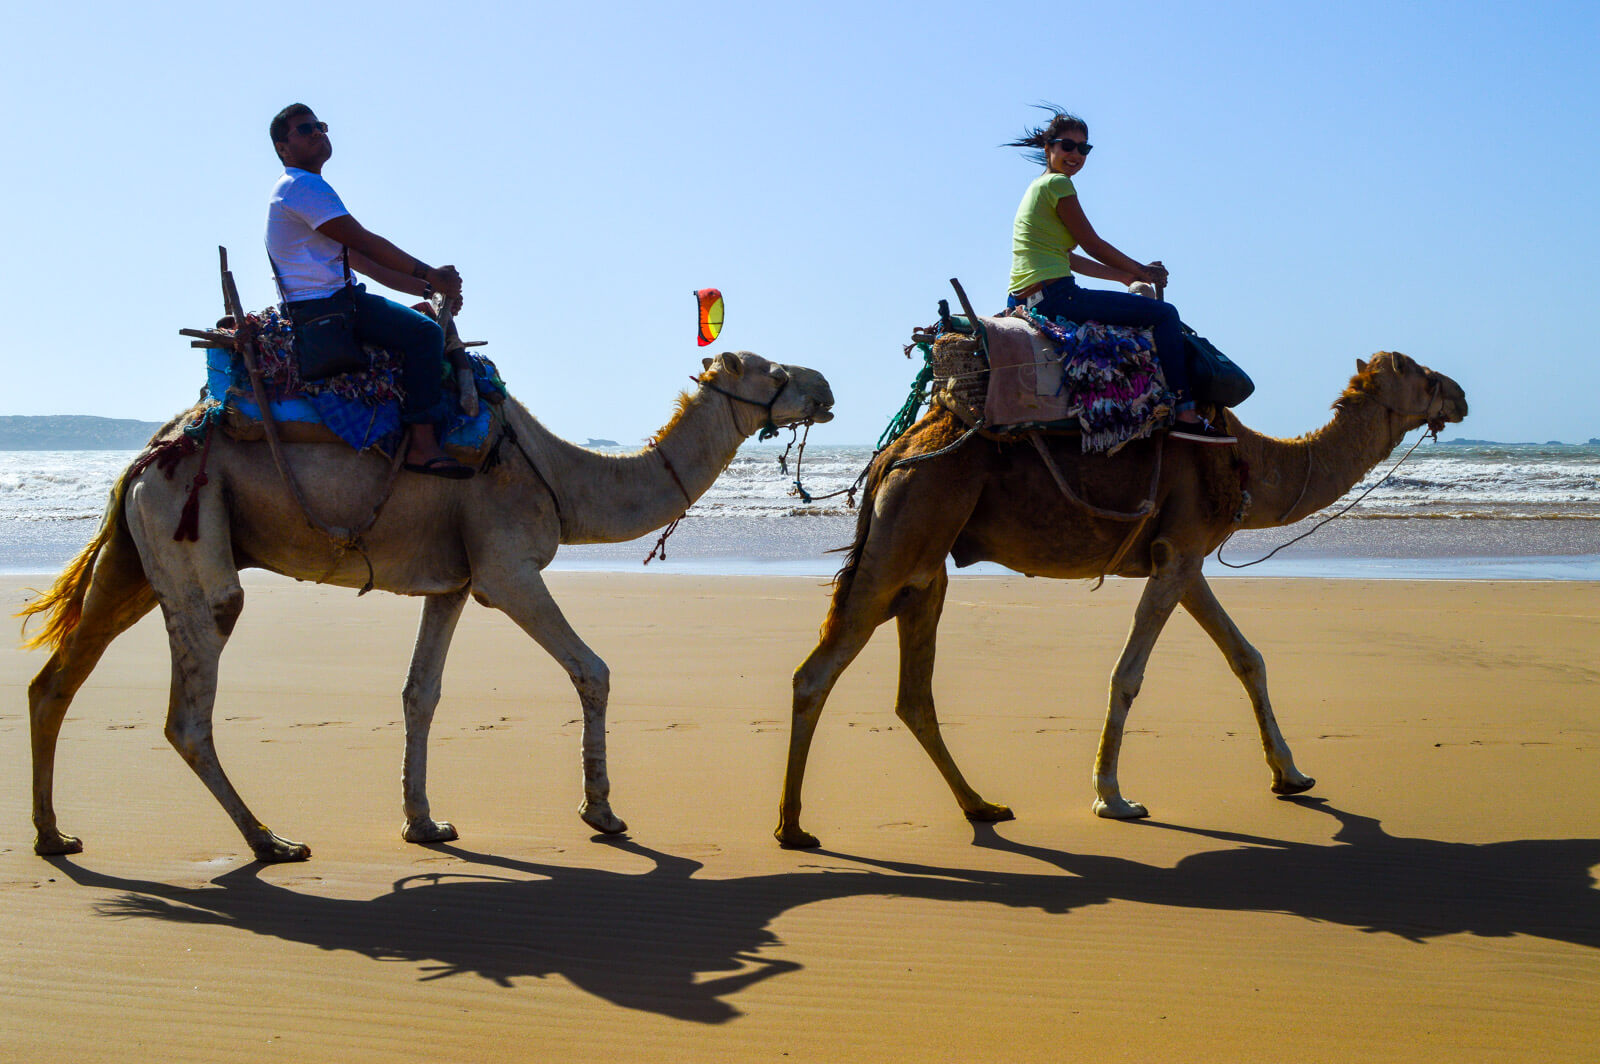 Riding camels at the beaches of Essaouira